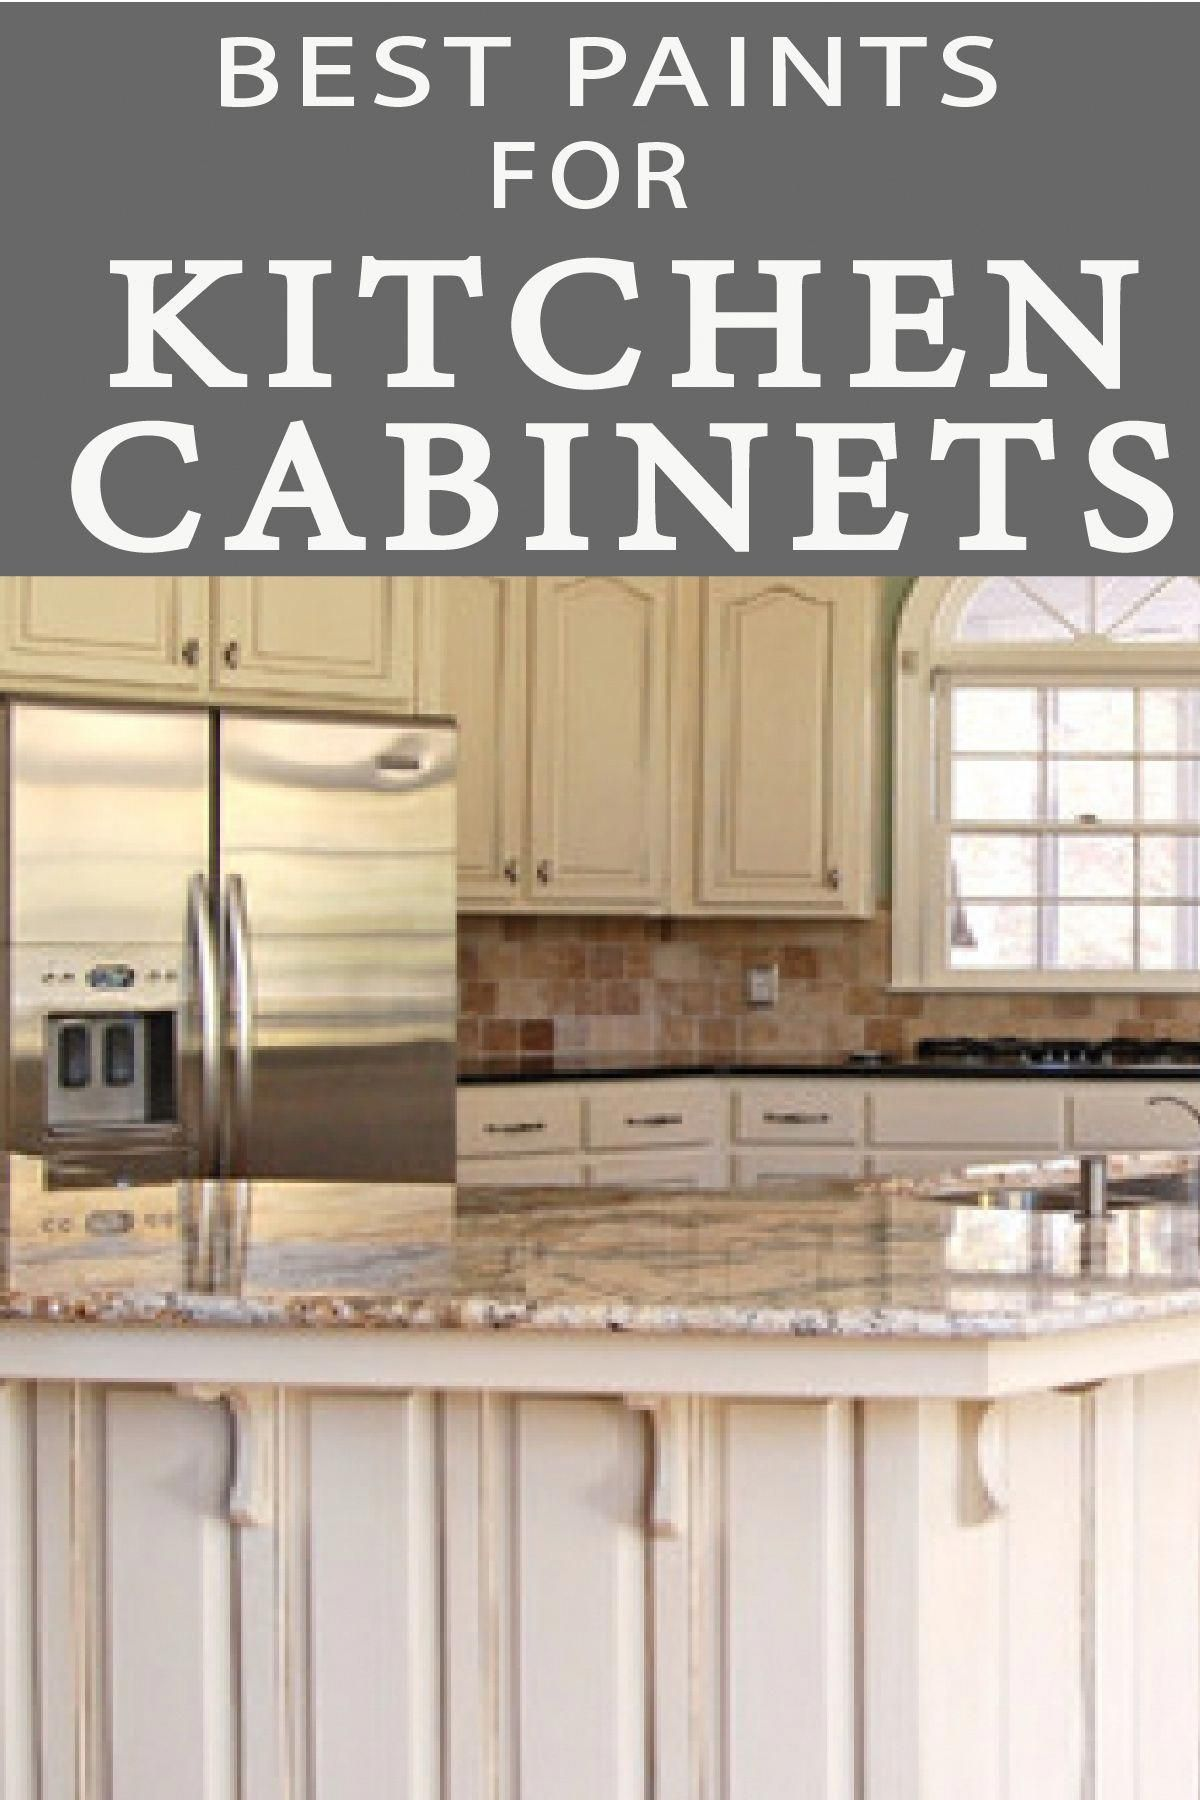 what kind of paint are best for painting kitchen cabinets on best paint for kitchen cabinets diy id=66956